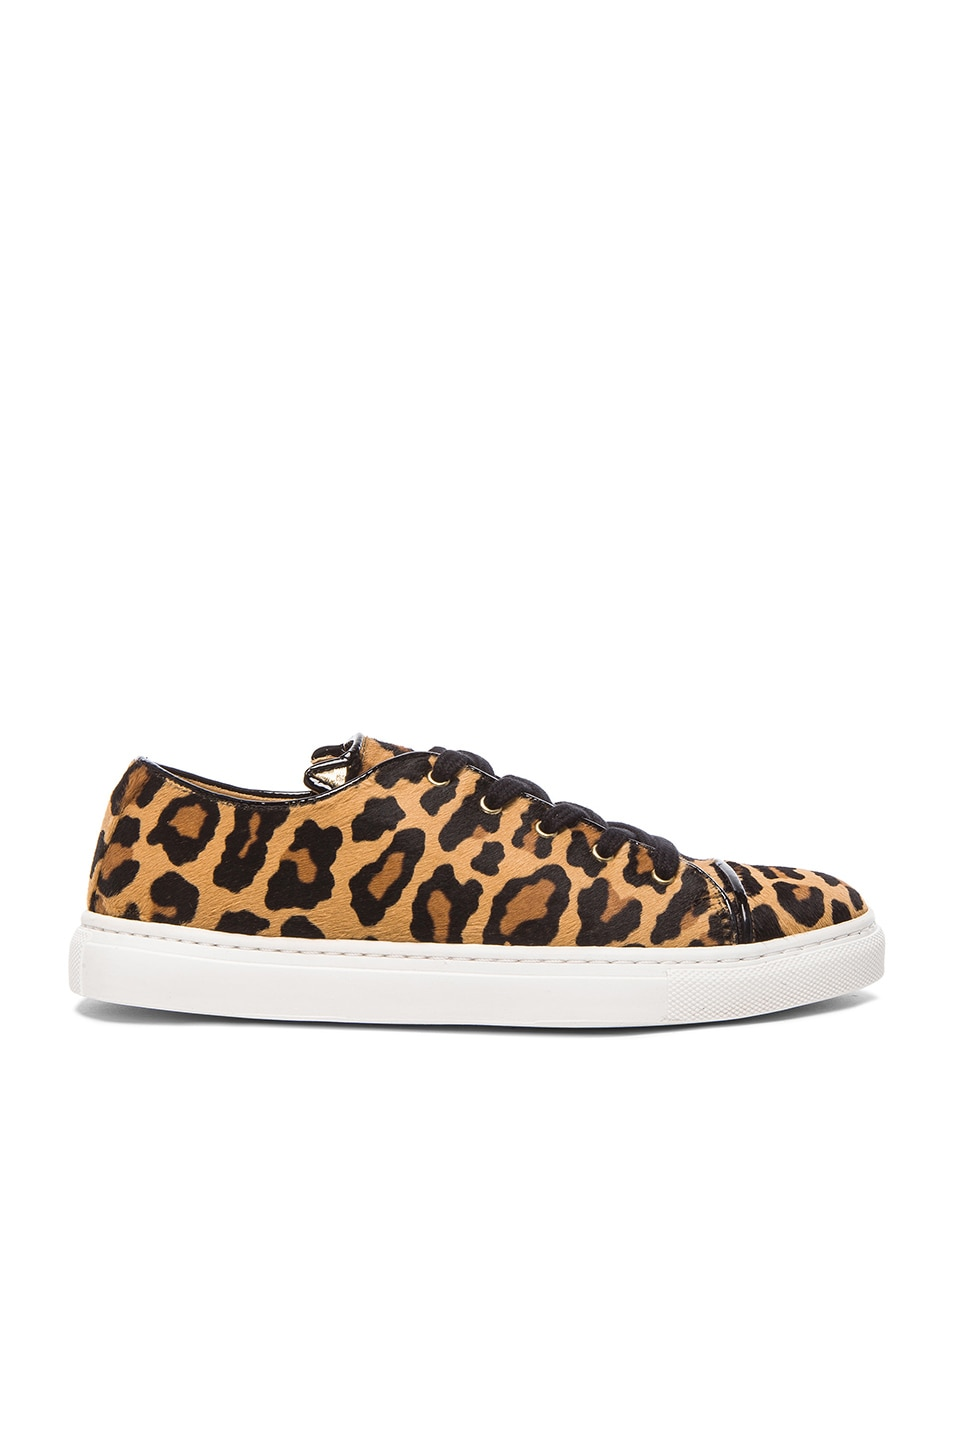 Image 1 of Charlotte Olympia Tomcat Low Top Pony Hair Sneakers in Leopard